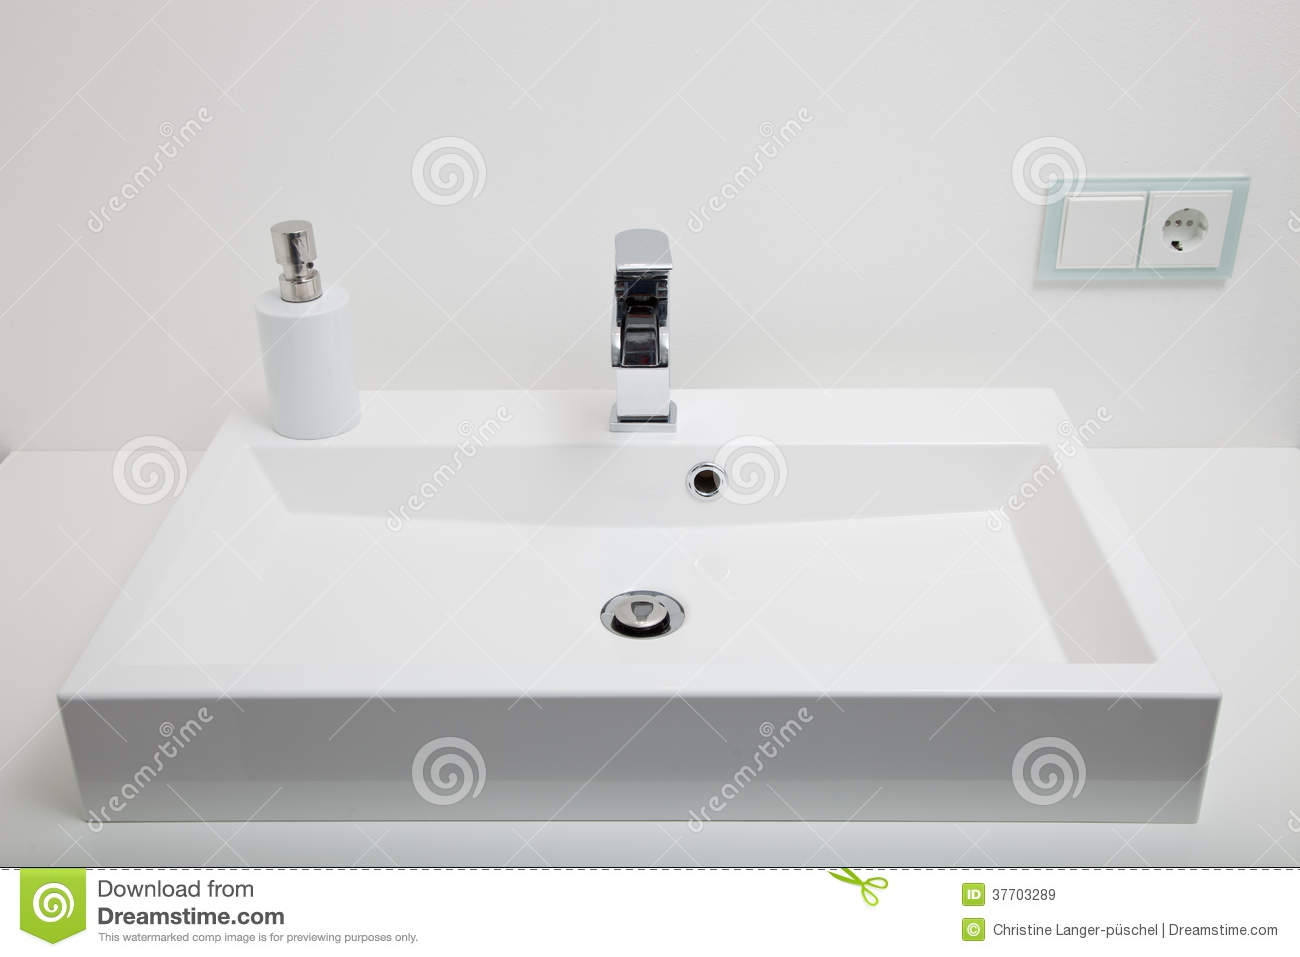 lavabo blanc simple dans une salle de bains images libres. Black Bedroom Furniture Sets. Home Design Ideas